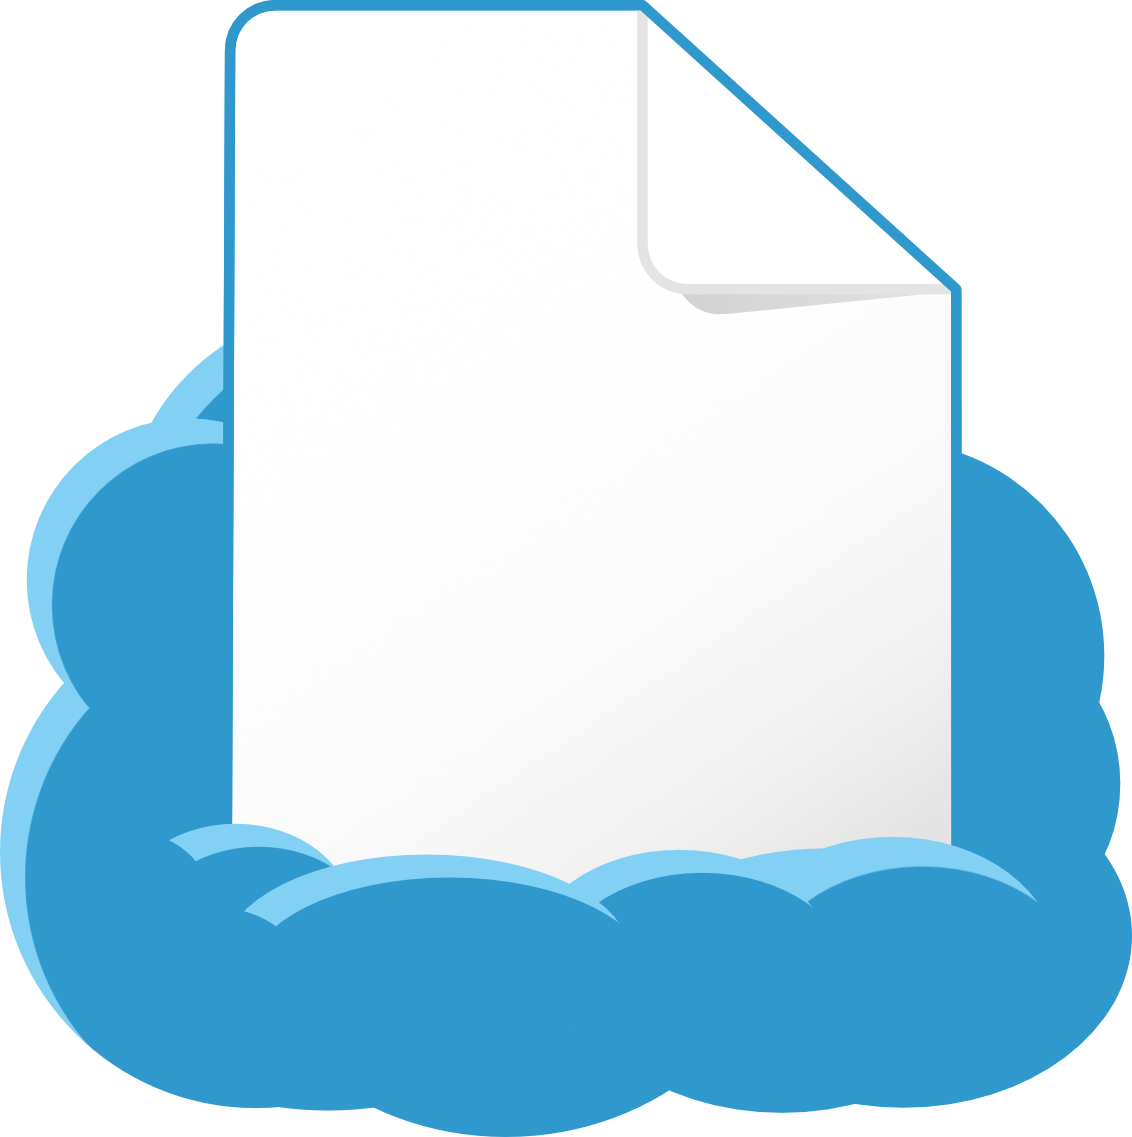 FileMaker containers powered by cloud services